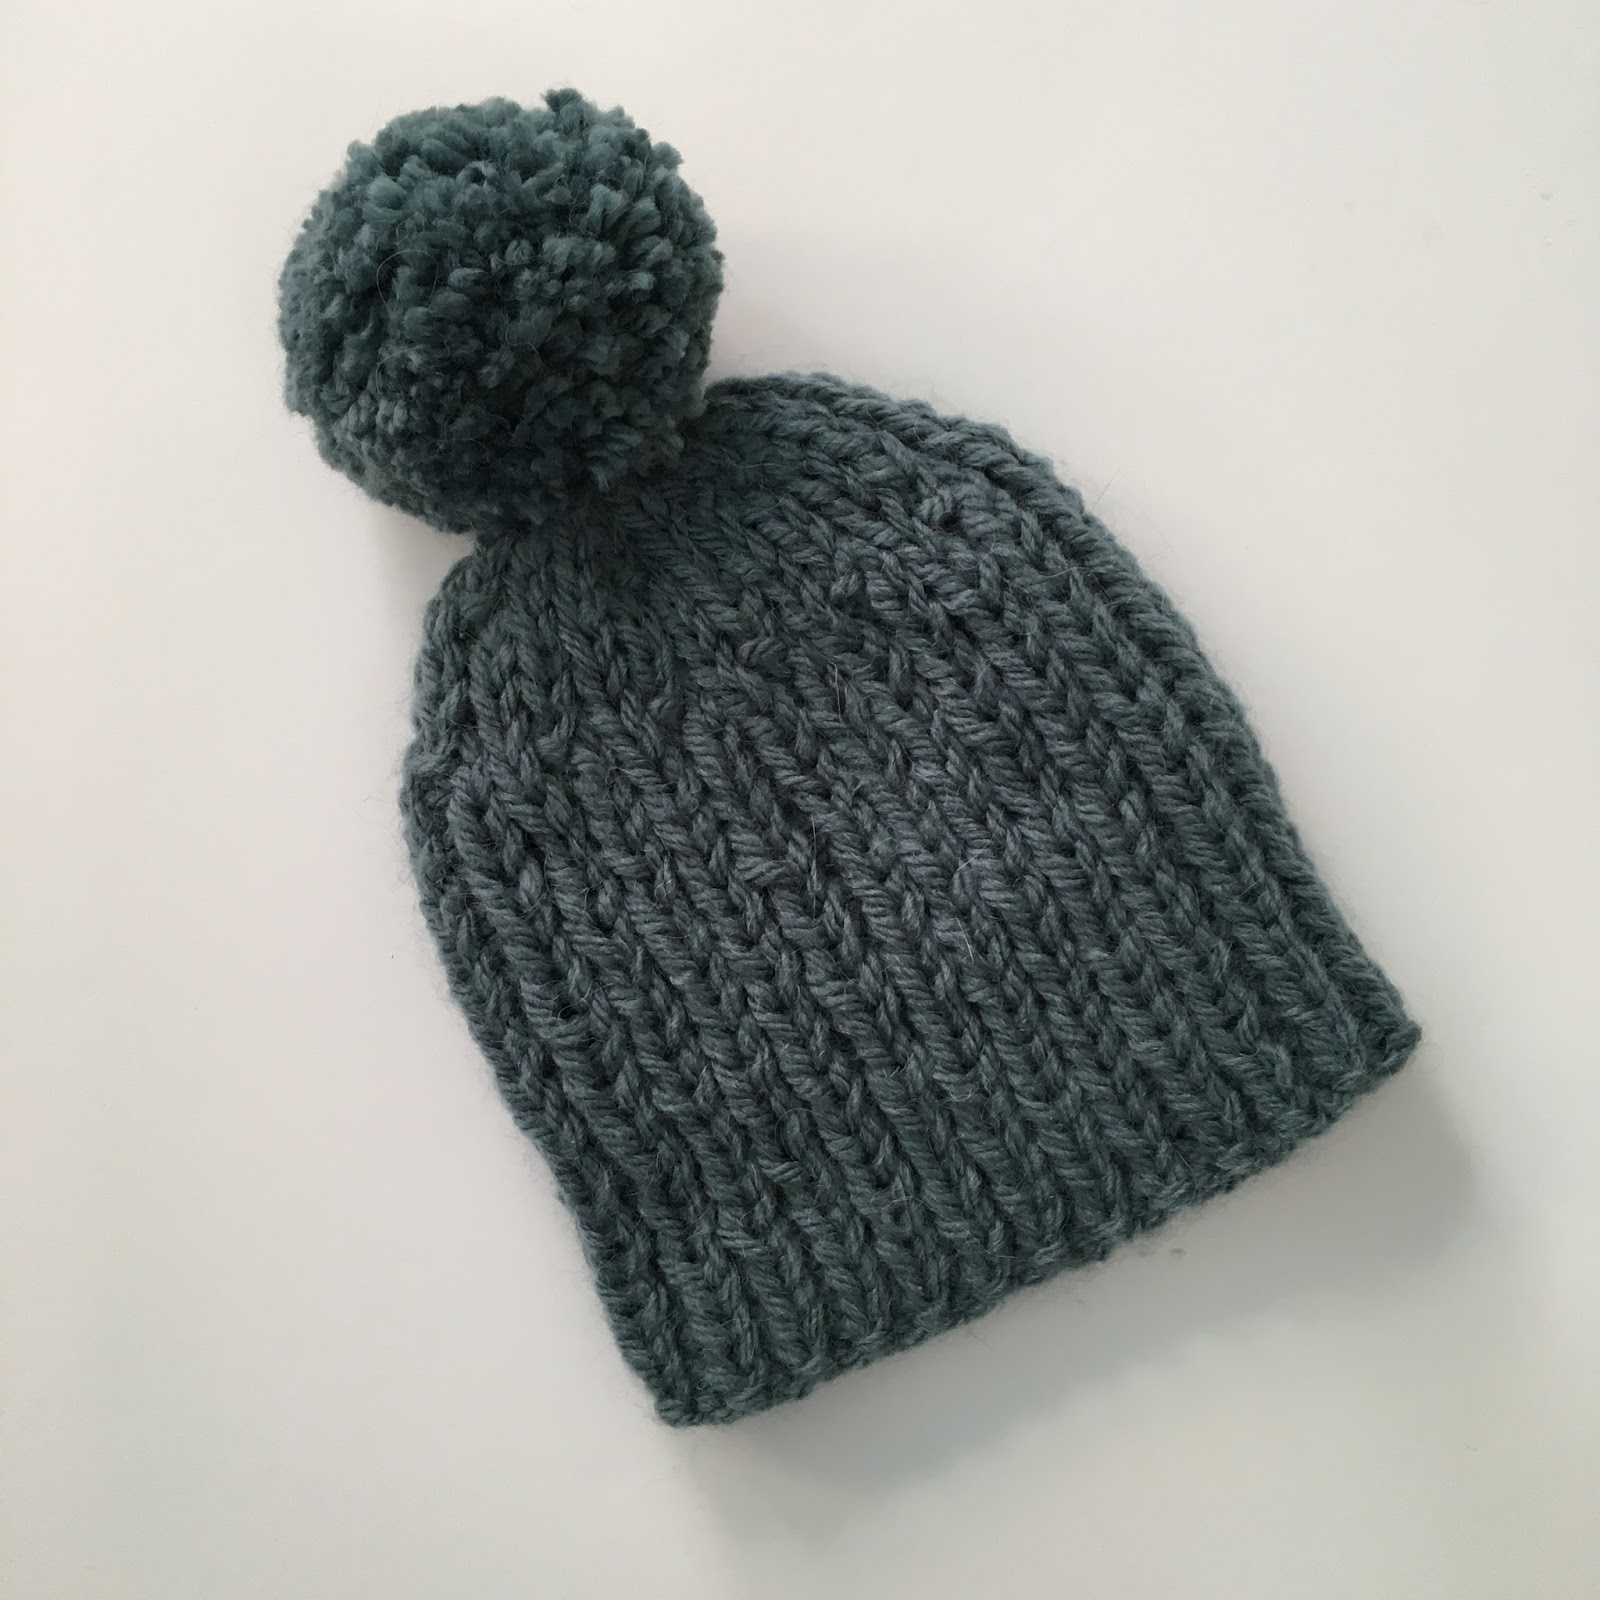 Simple Hat Knitting Pattern In The Round : Mack and Mabel: Knitting Patterns